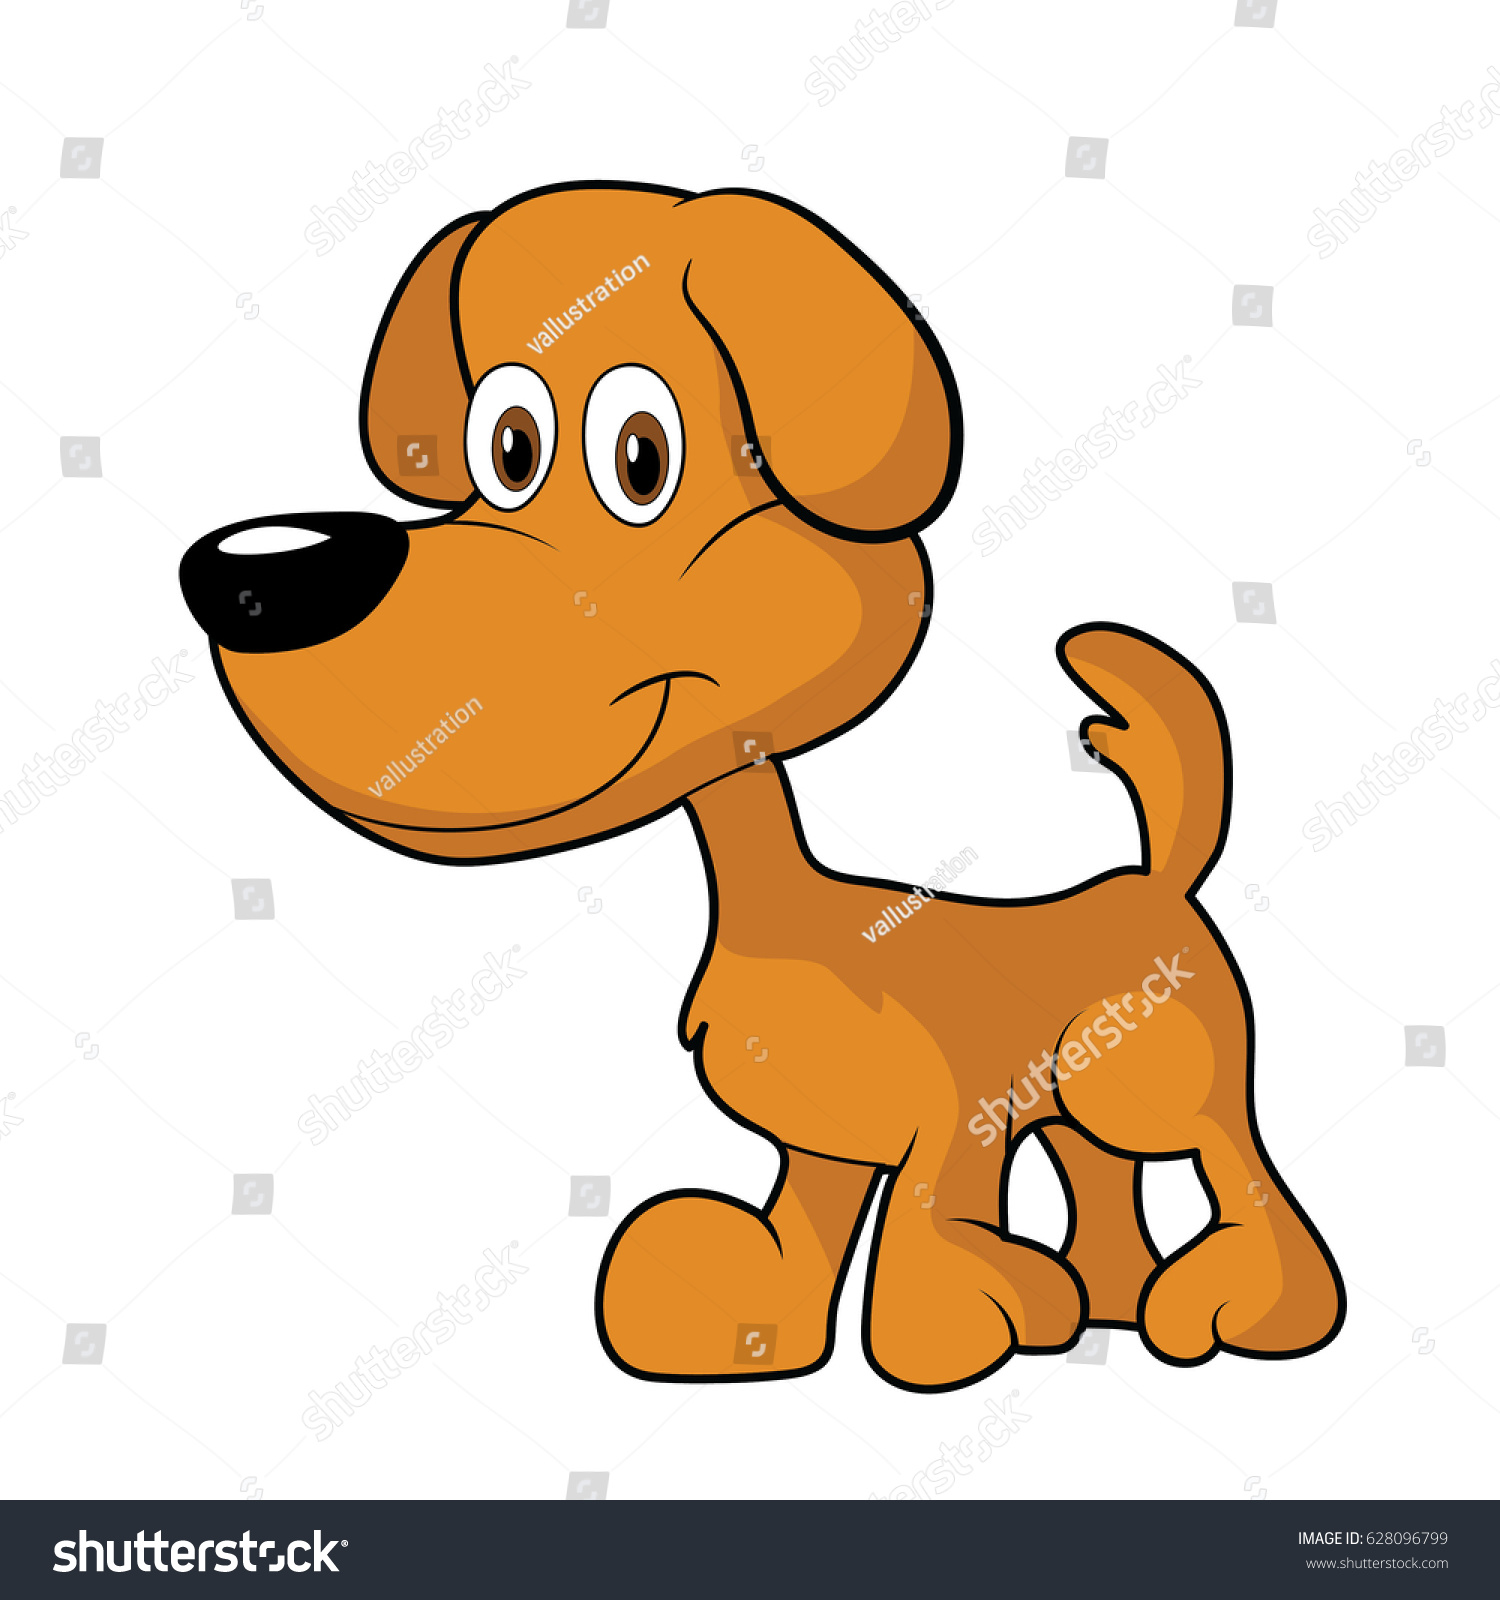 Image of: Worldartsme Little Cute Brown Cartoon Dog Clipart Shutterstock Little Cute Brown Cartoon Dog Clipart Stock Vector royalty Free